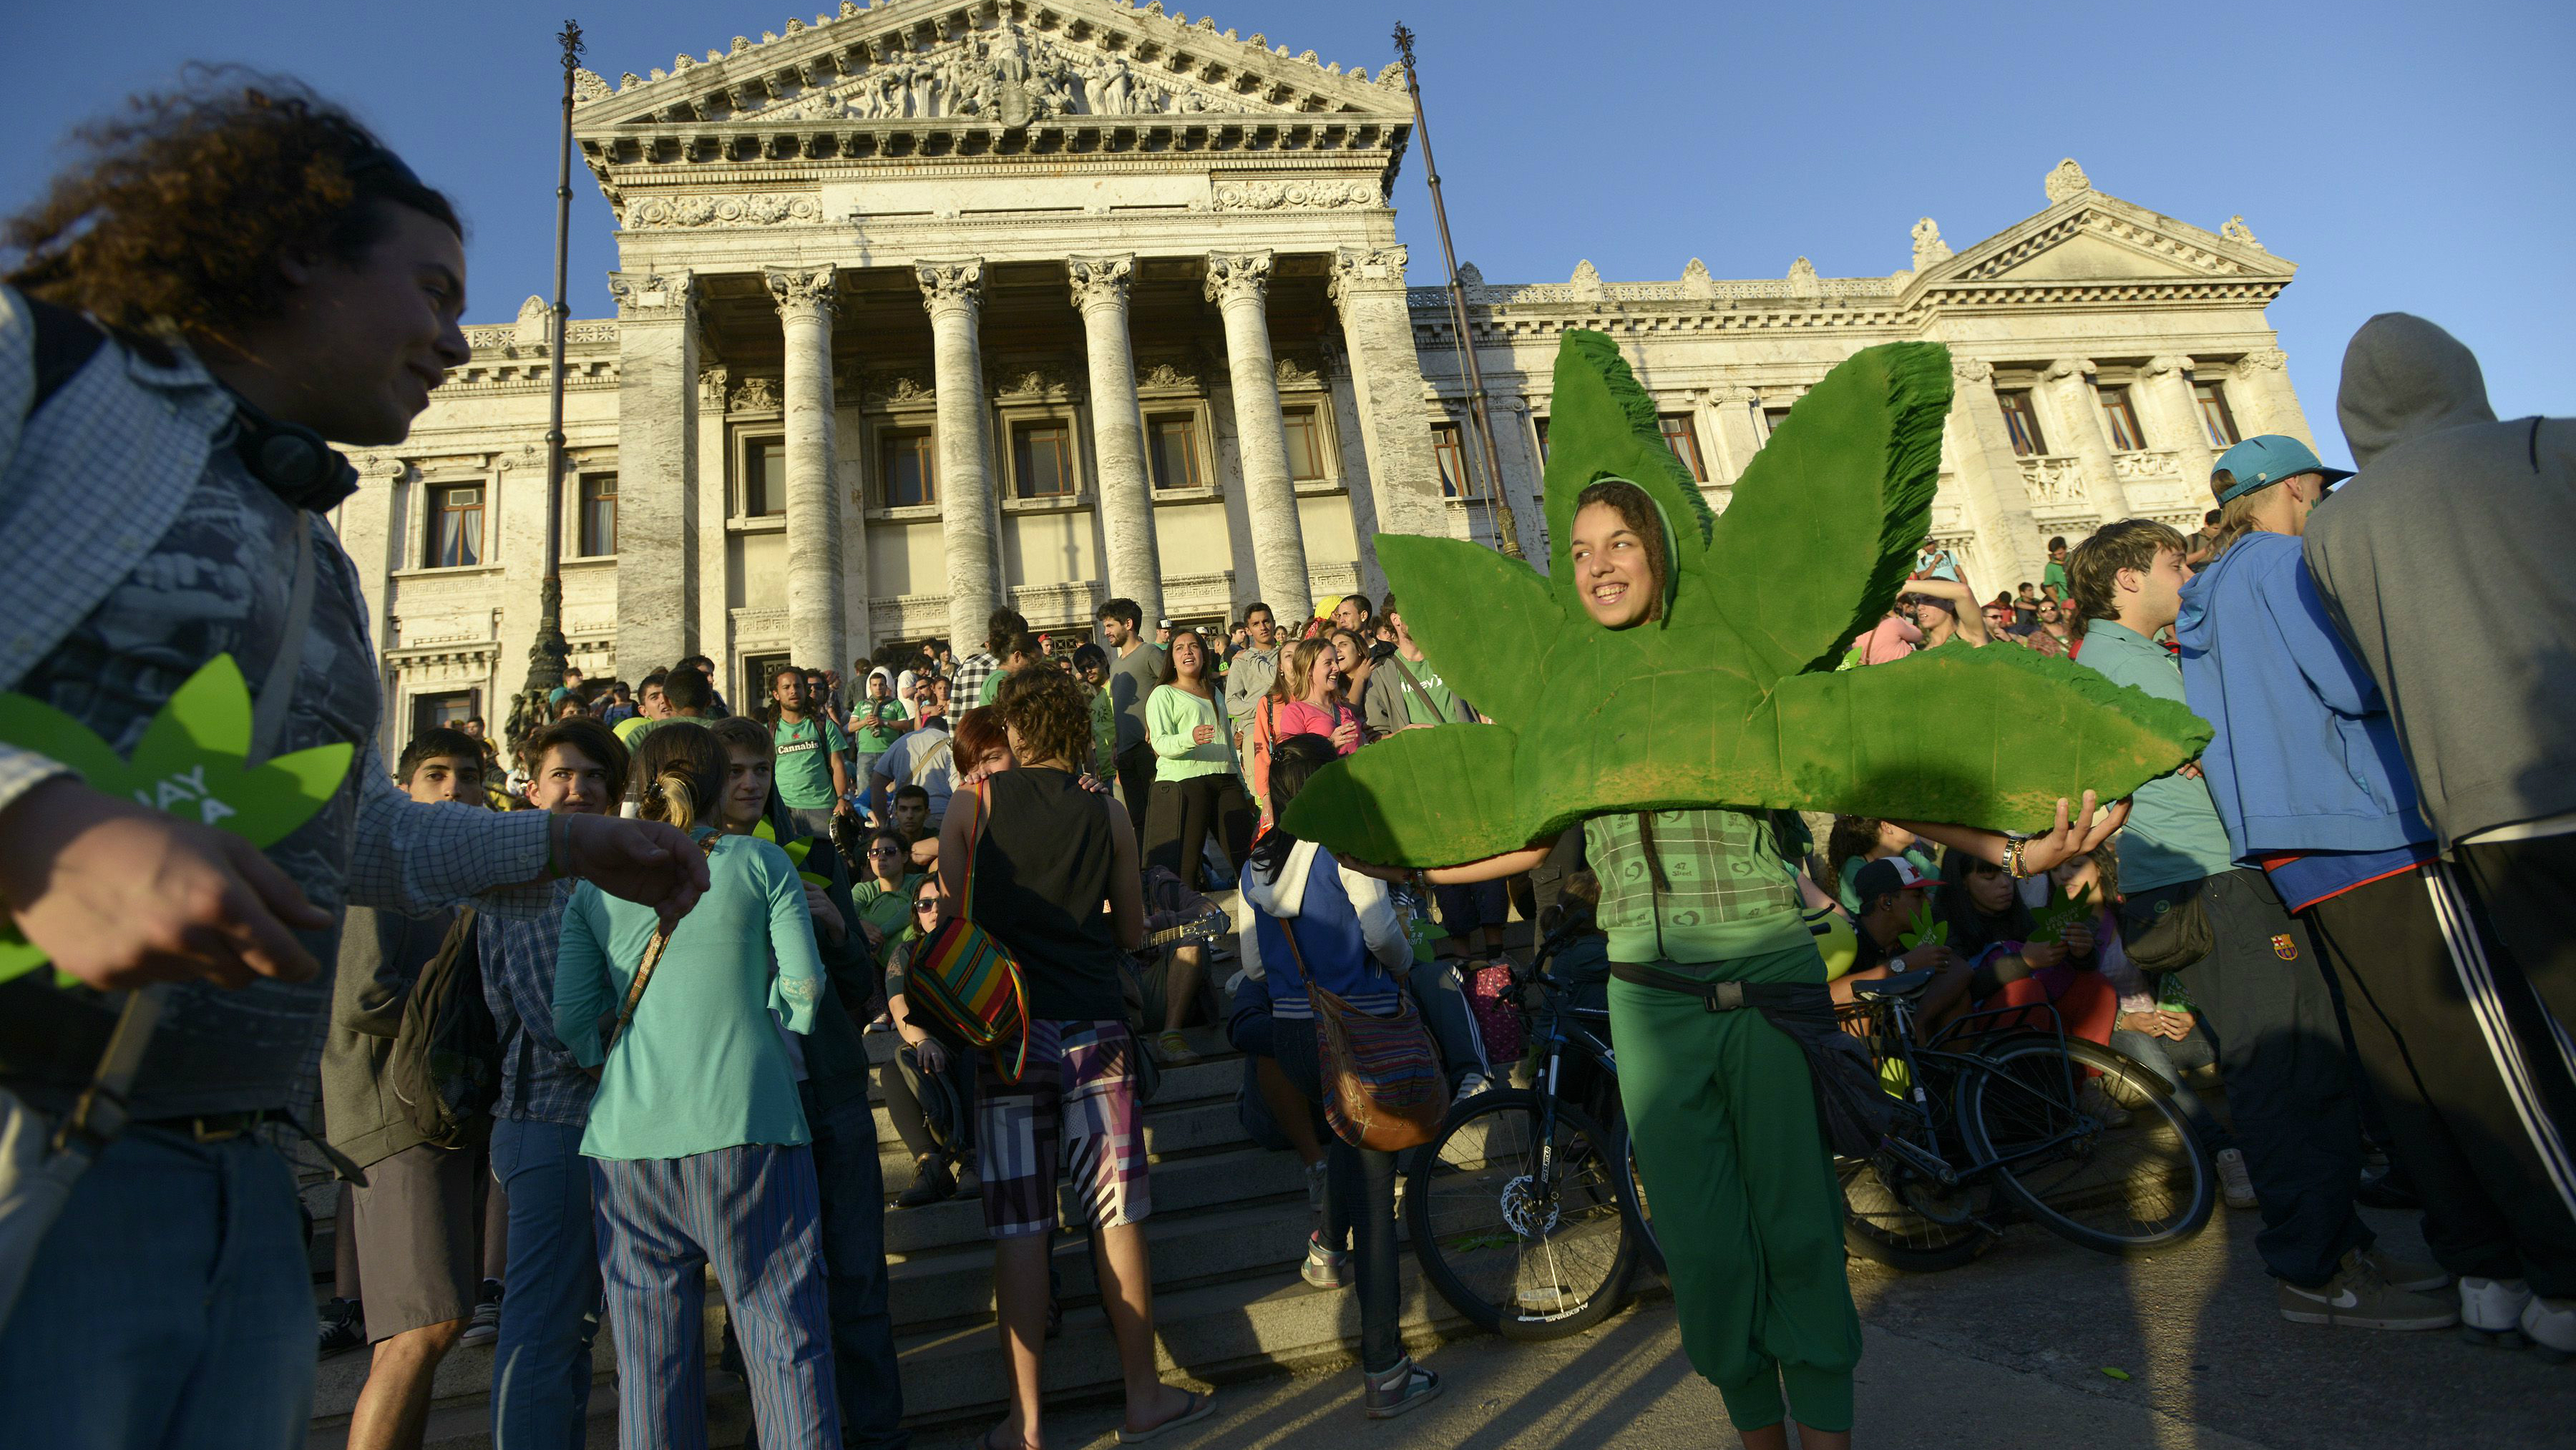 In this Tuesday, Dec. 10, 2013 photo, people attend a demonstration in support of the legalization of marijuana outside the Congress in Montevideo, Uruguay. Uruguay has become the first country to create a national marketplace for legal marijuana, with the government regulating the production, sales and use of pot in a bold bid to control addiction and drug violence. The Senate gave final legislative approval to the bill late Tuesday. (AP Photo/Matilde Campodonico)